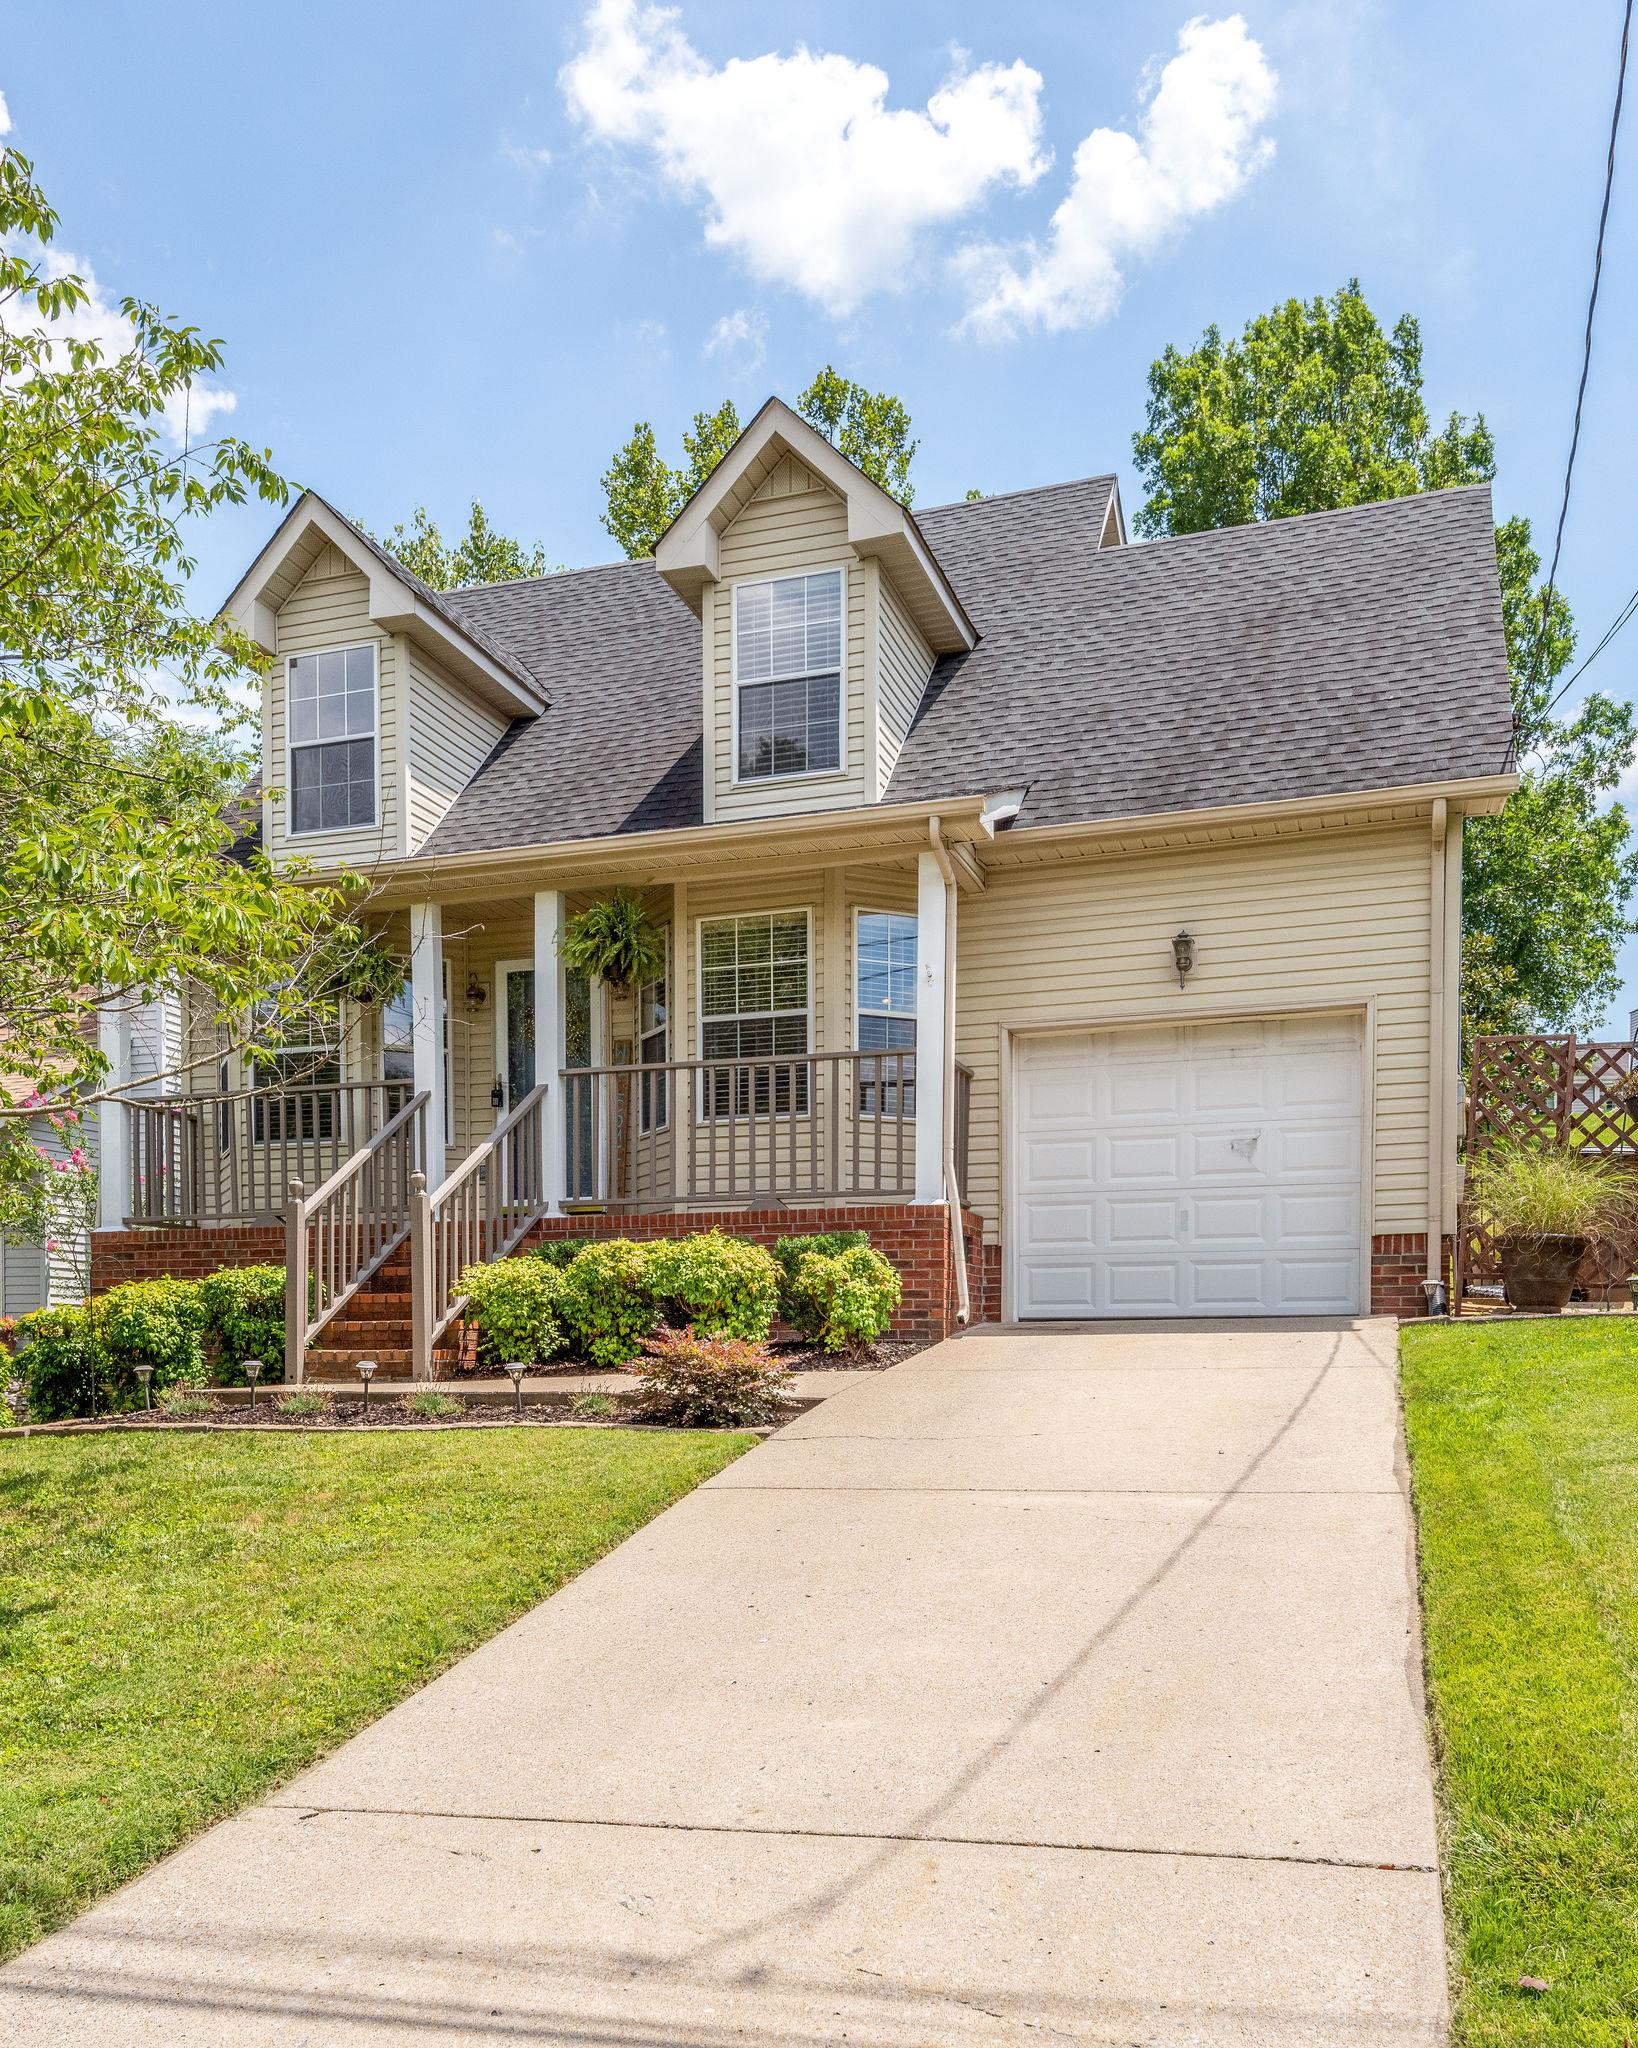 608 Maple Top Dr, Antioch, TN 37013 - Antioch, TN real estate listing